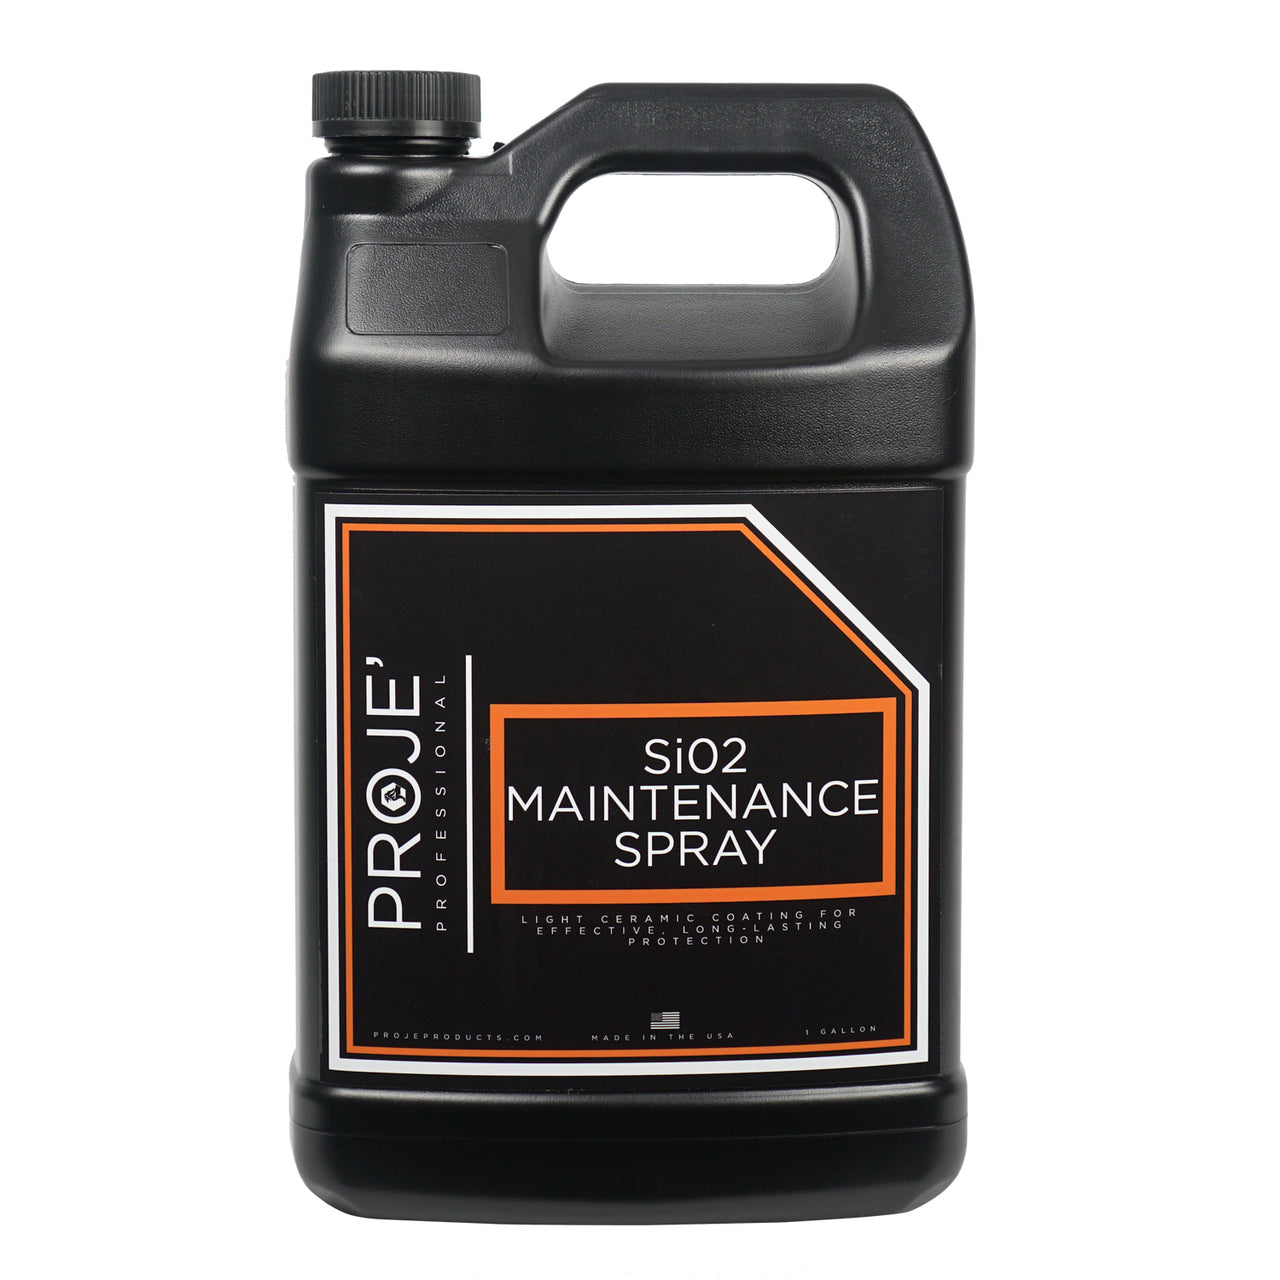 Sio2 MAINTENANCE SPRAY